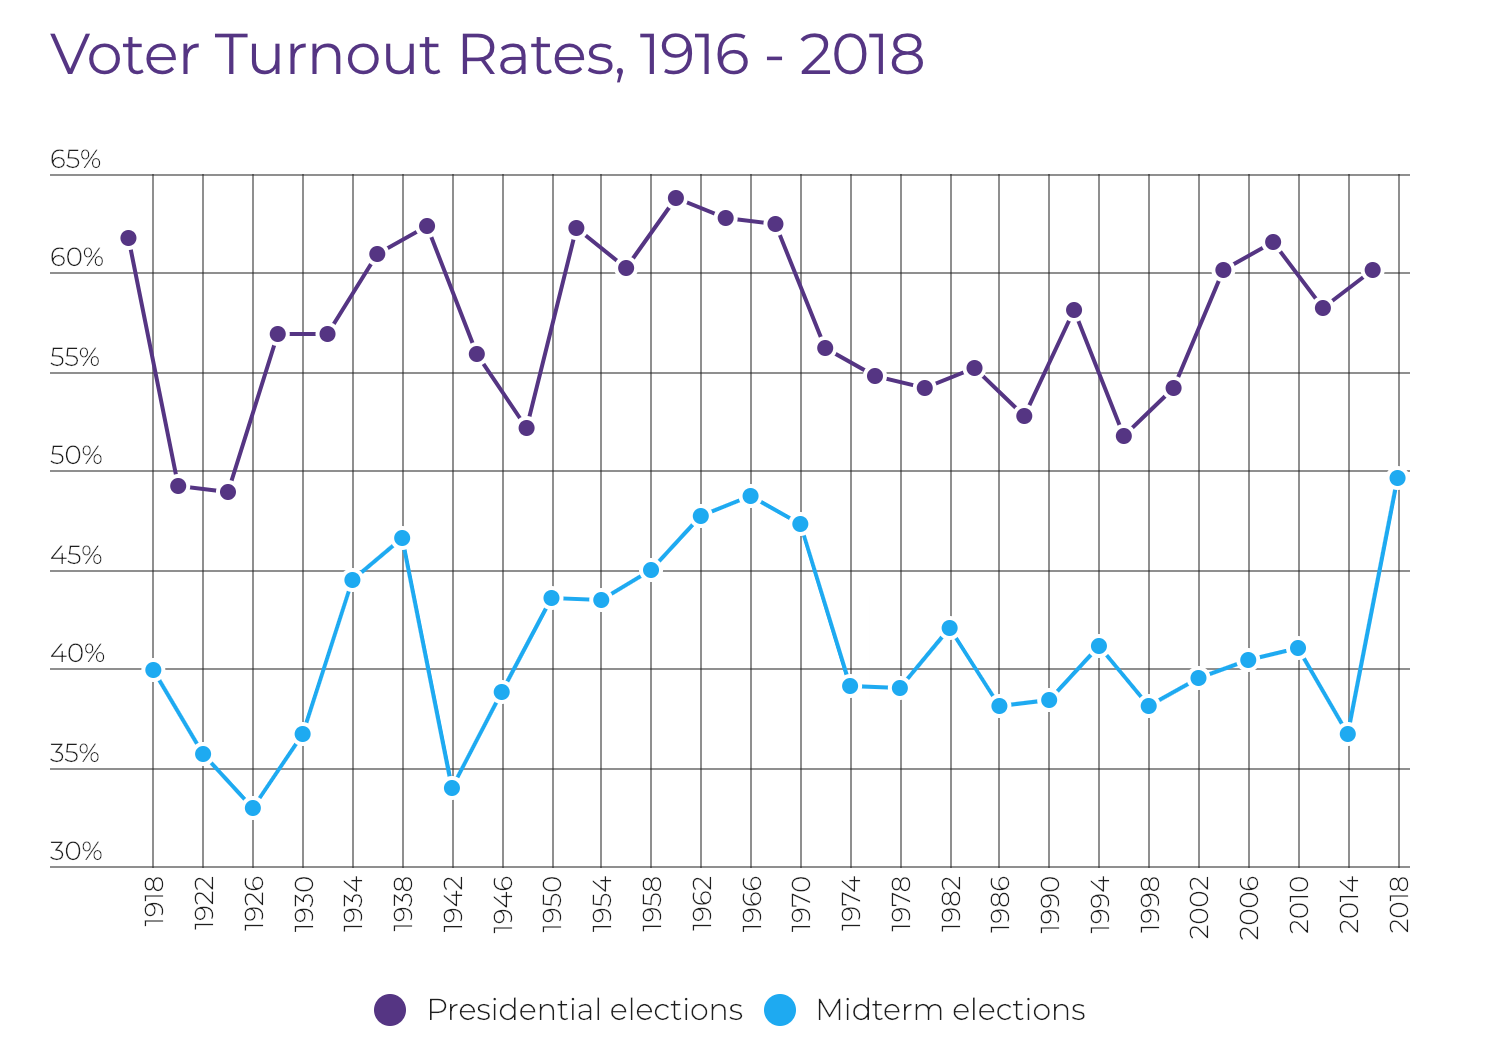 Voter turnout in the last century